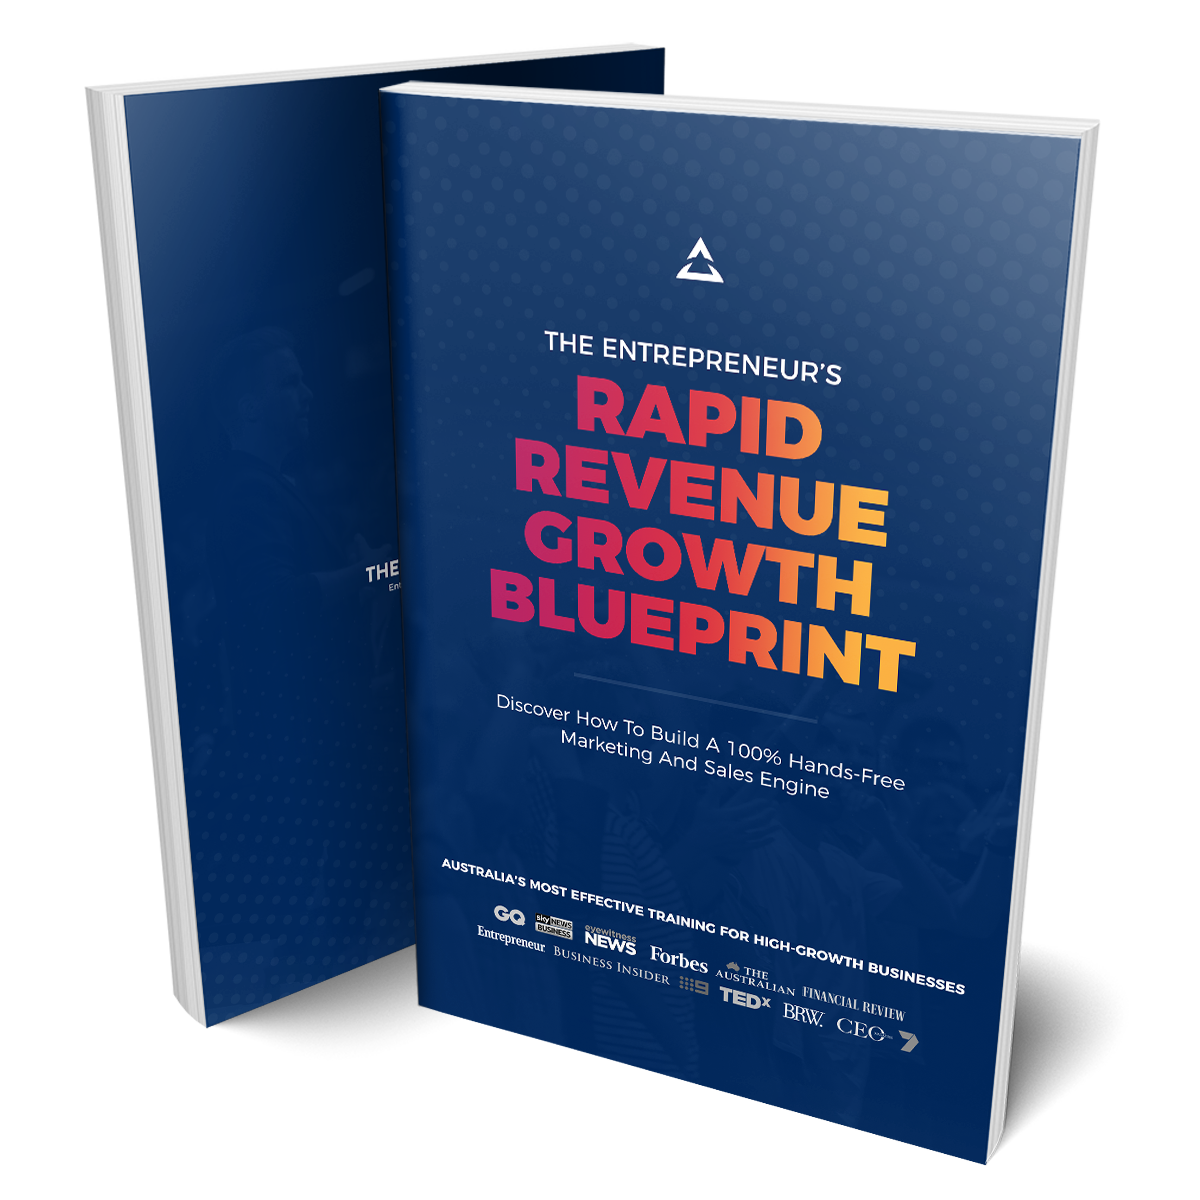 Rapid-Revenue-Growth-Blueprint